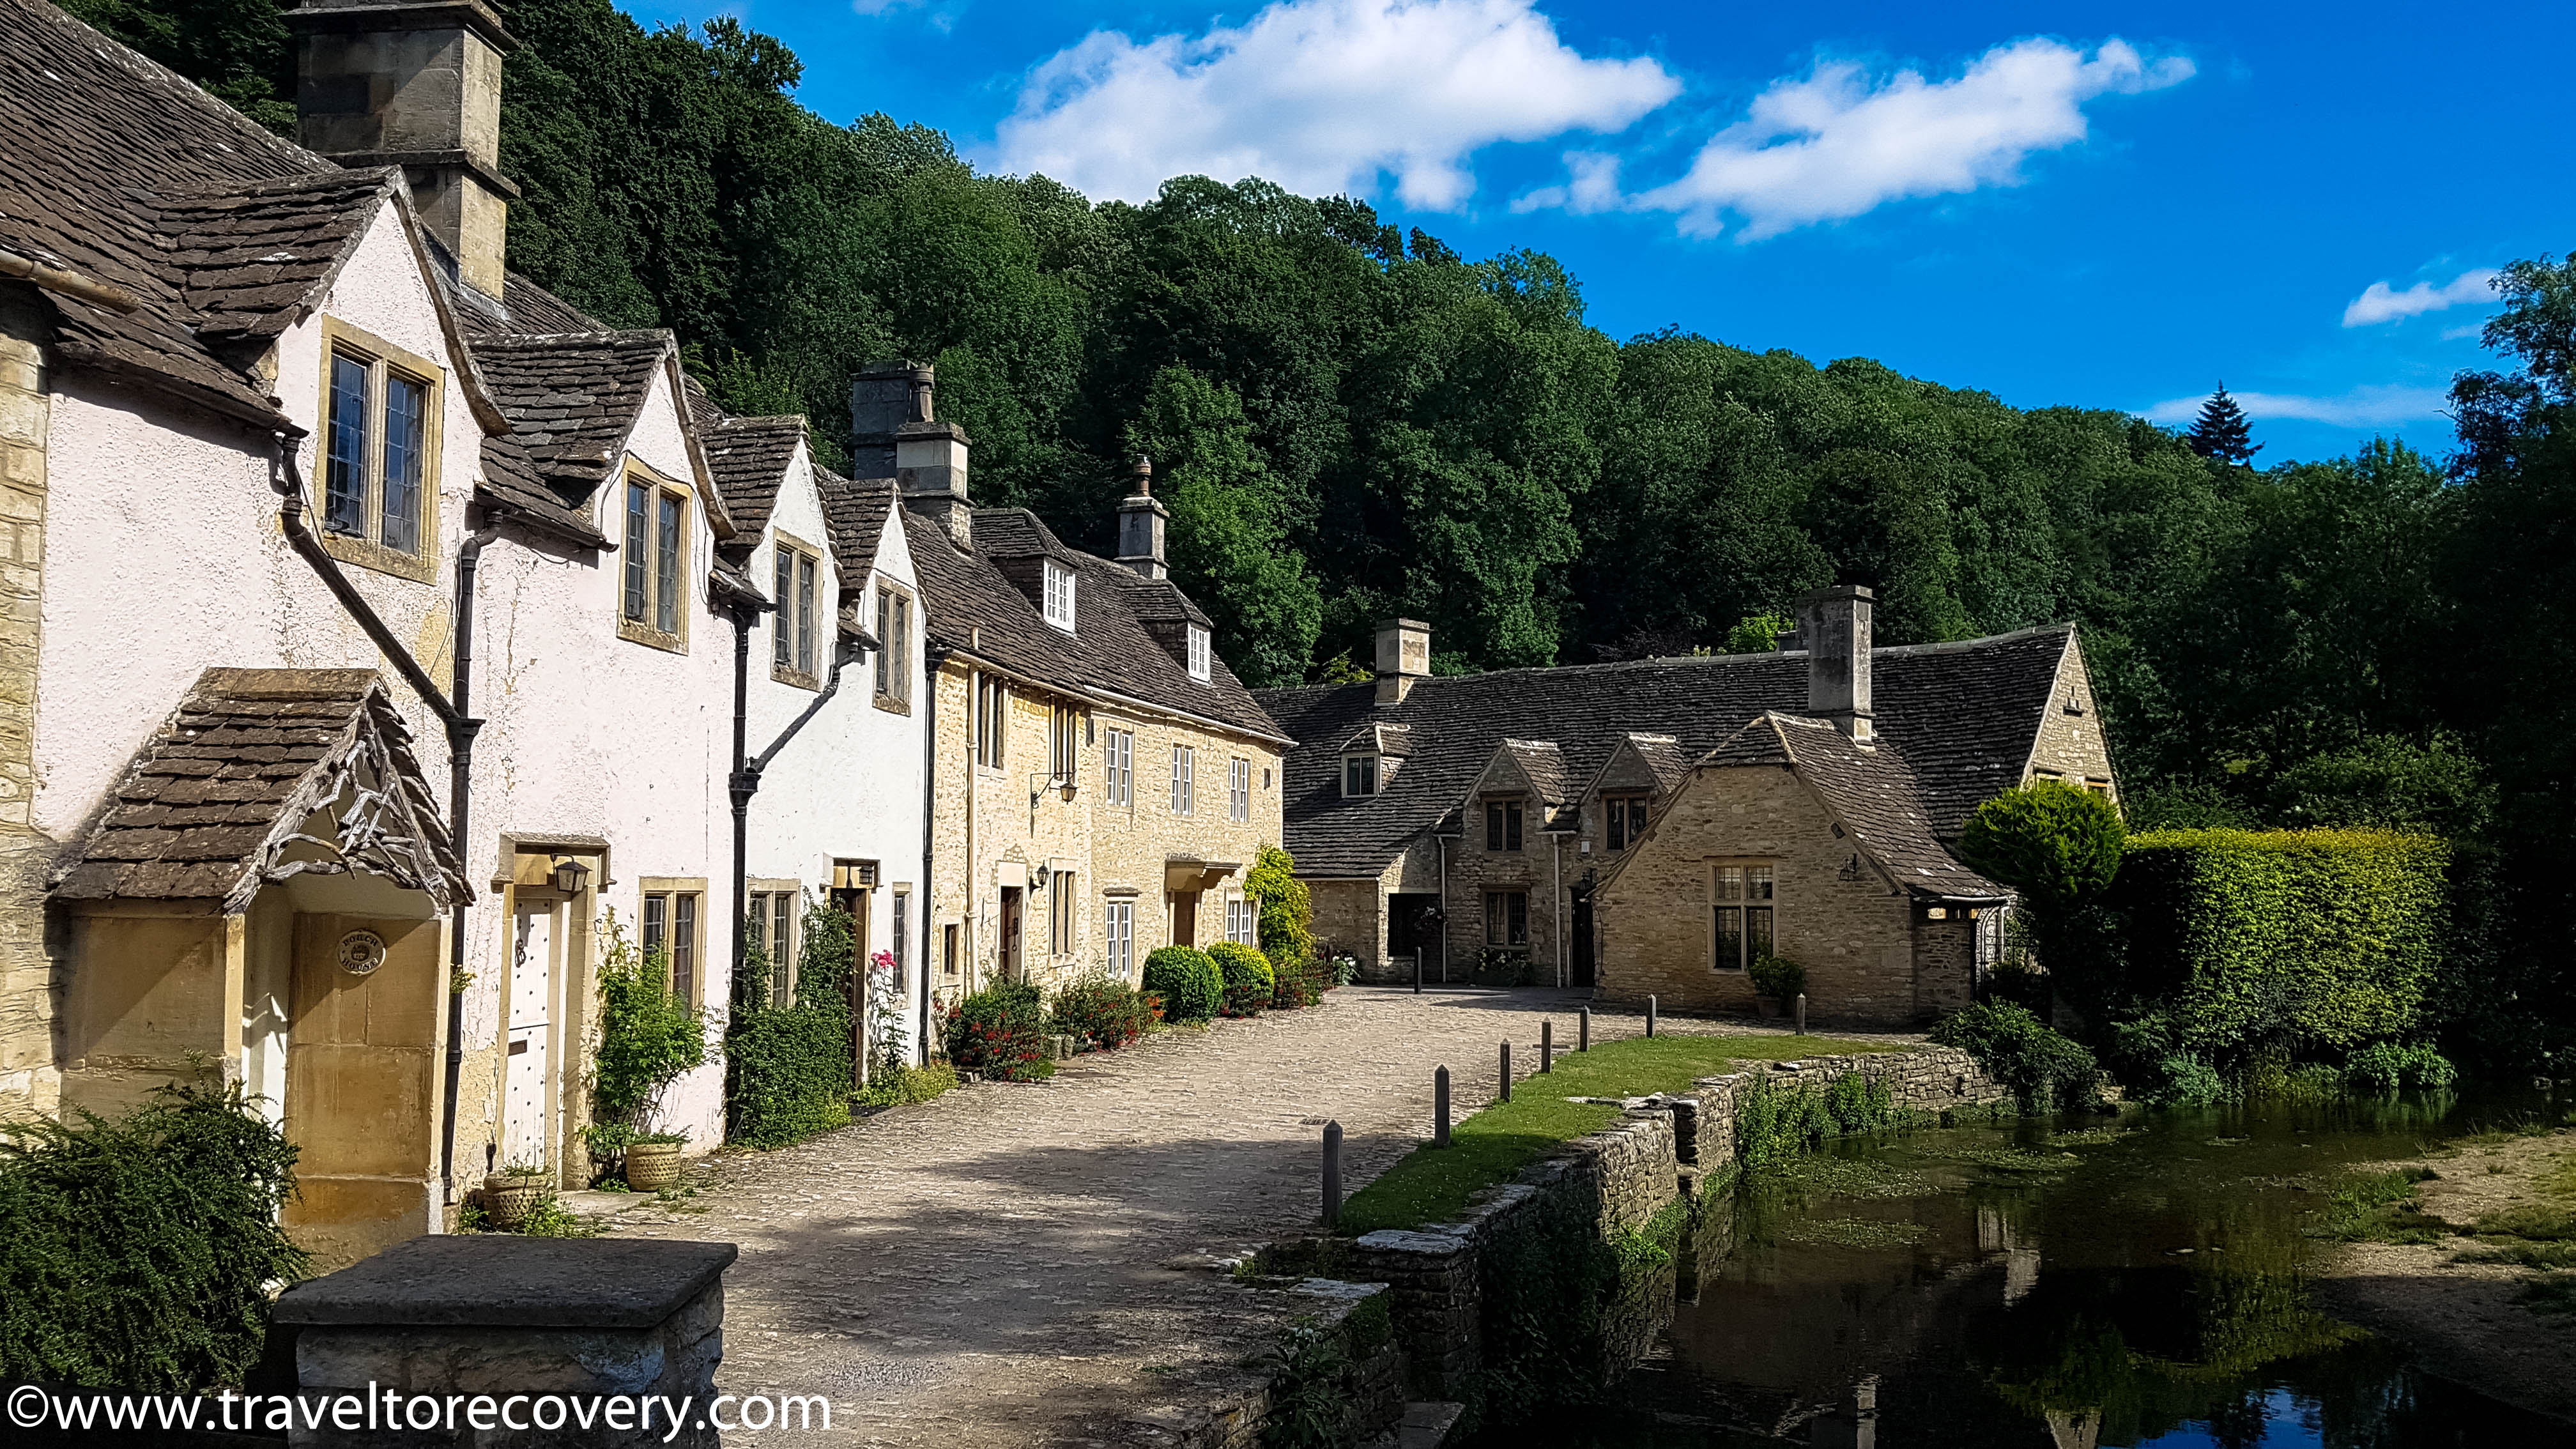 Road trips to Castle Combe by Travel to Recovery